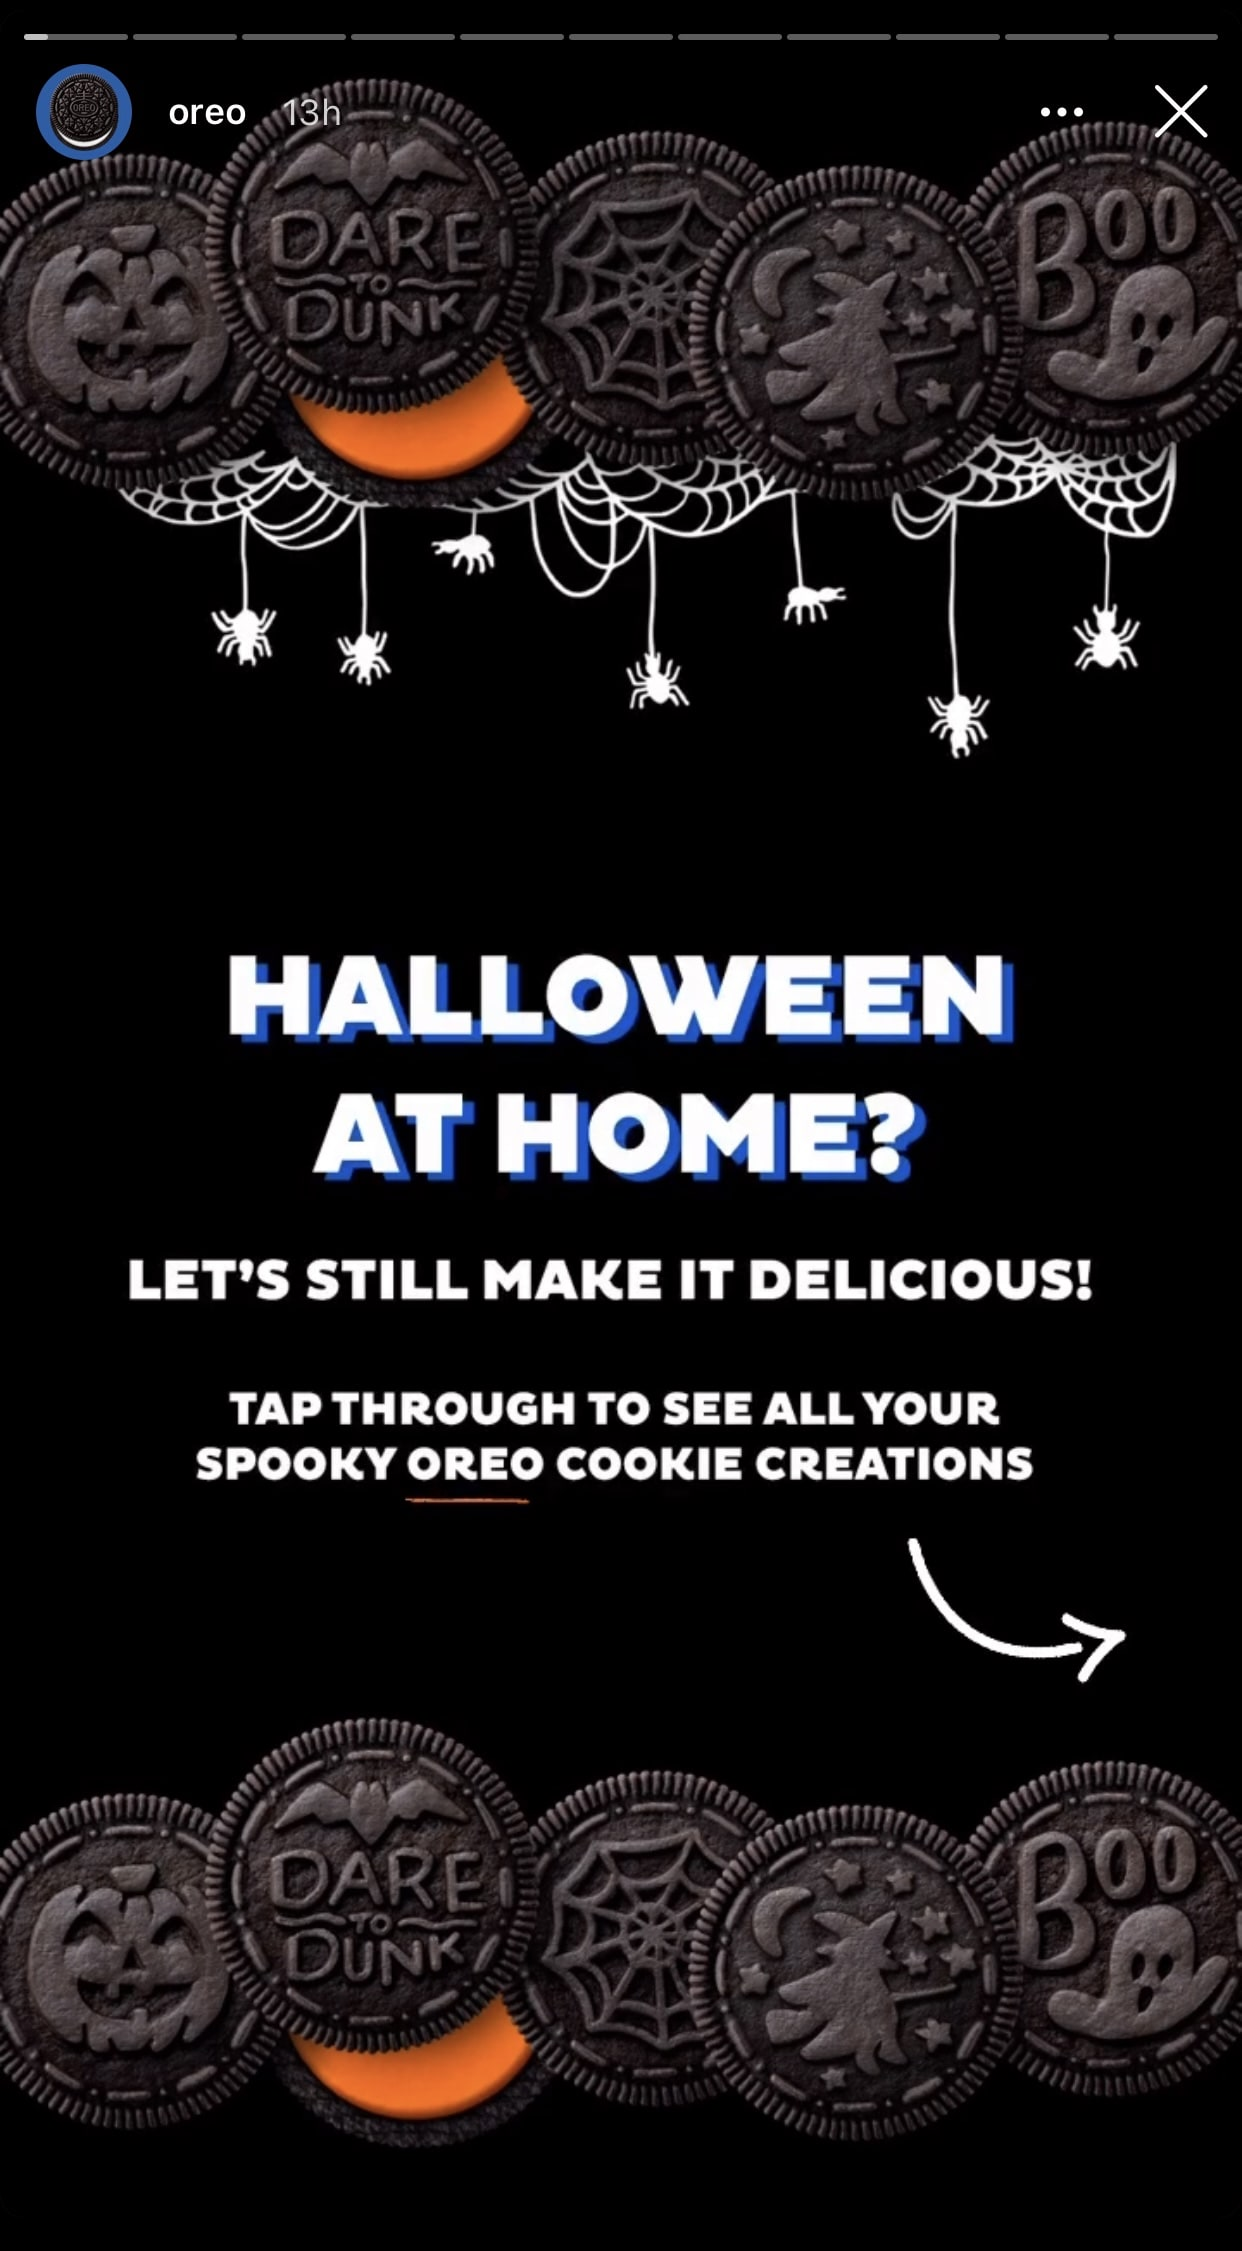 Oreo Halloween 2020 Instagram Post